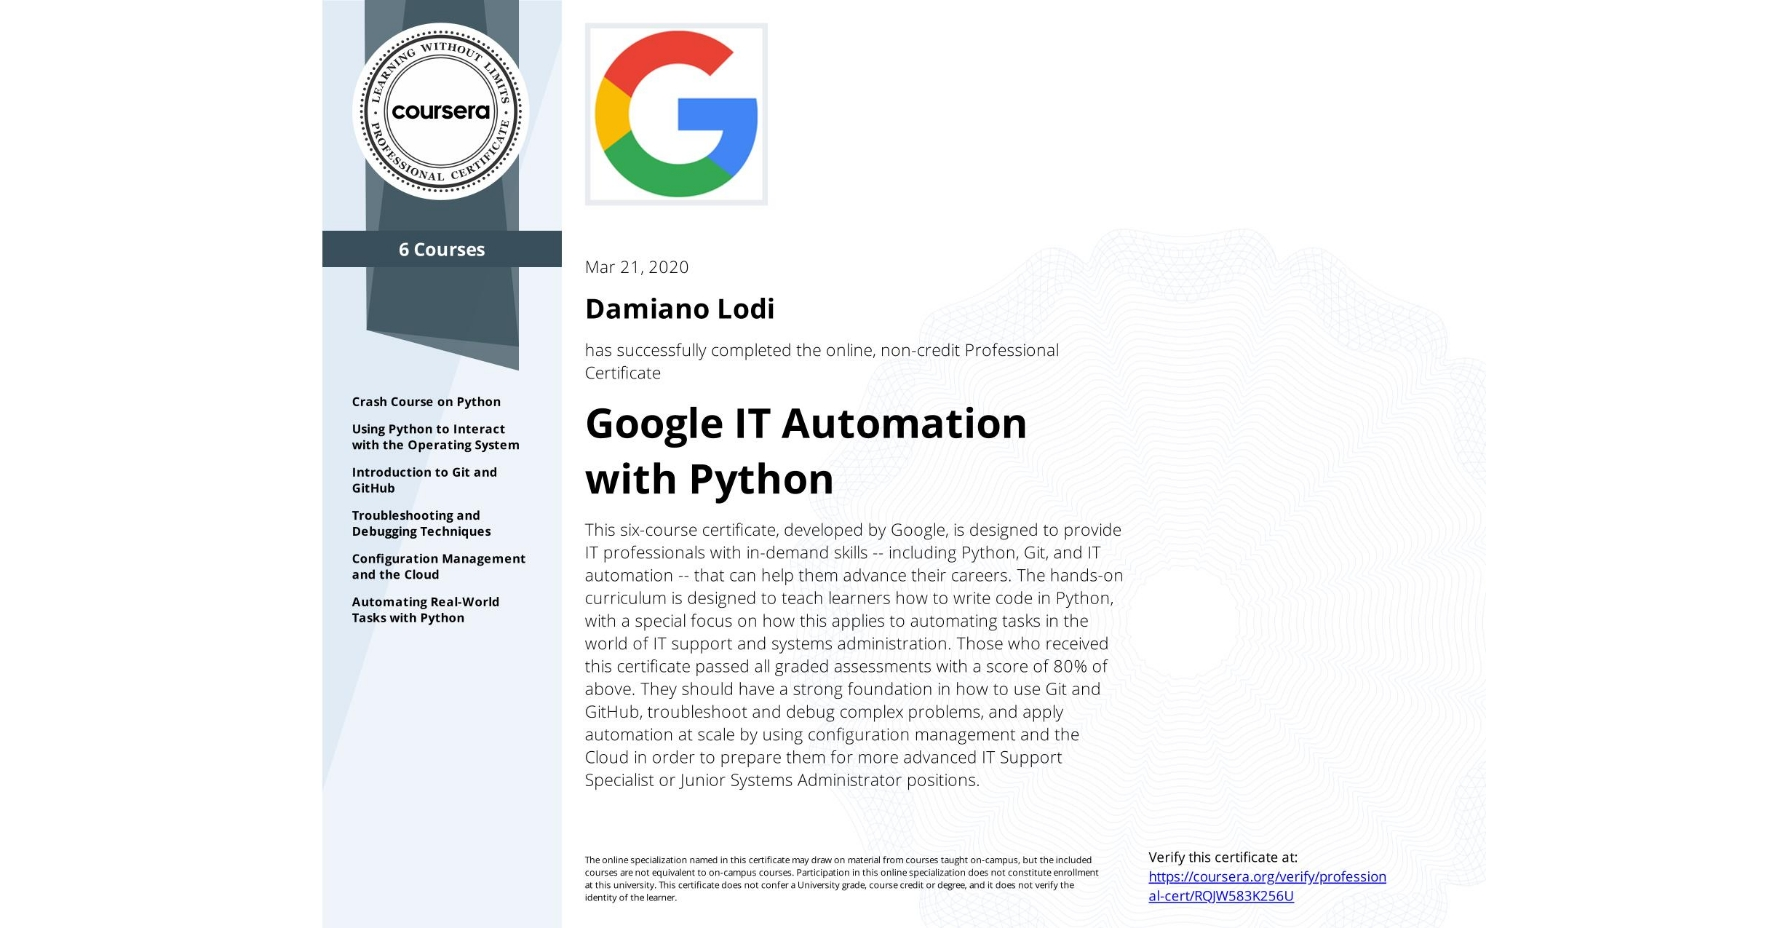 View certificate for Damiano Lodi, Google IT Automation with Python, offered through Coursera. This six-course certificate, developed by Google, is designed to provide IT professionals with in-demand skills -- including Python, Git, and IT automation -- that can help them advance their careers. The hands-on curriculum is designed to teach learners how to write code in Python, with a special focus on how this applies to automating tasks in the world of IT support and systems administration.   Those who received this certificate passed all graded assessments with a score of 80% of above. They should have a strong foundation in how to use Git and GitHub, troubleshoot and debug complex problems, and apply automation at scale by using configuration management and the Cloud in order to prepare them for more advanced IT Support Specialist or Junior Systems Administrator positions.